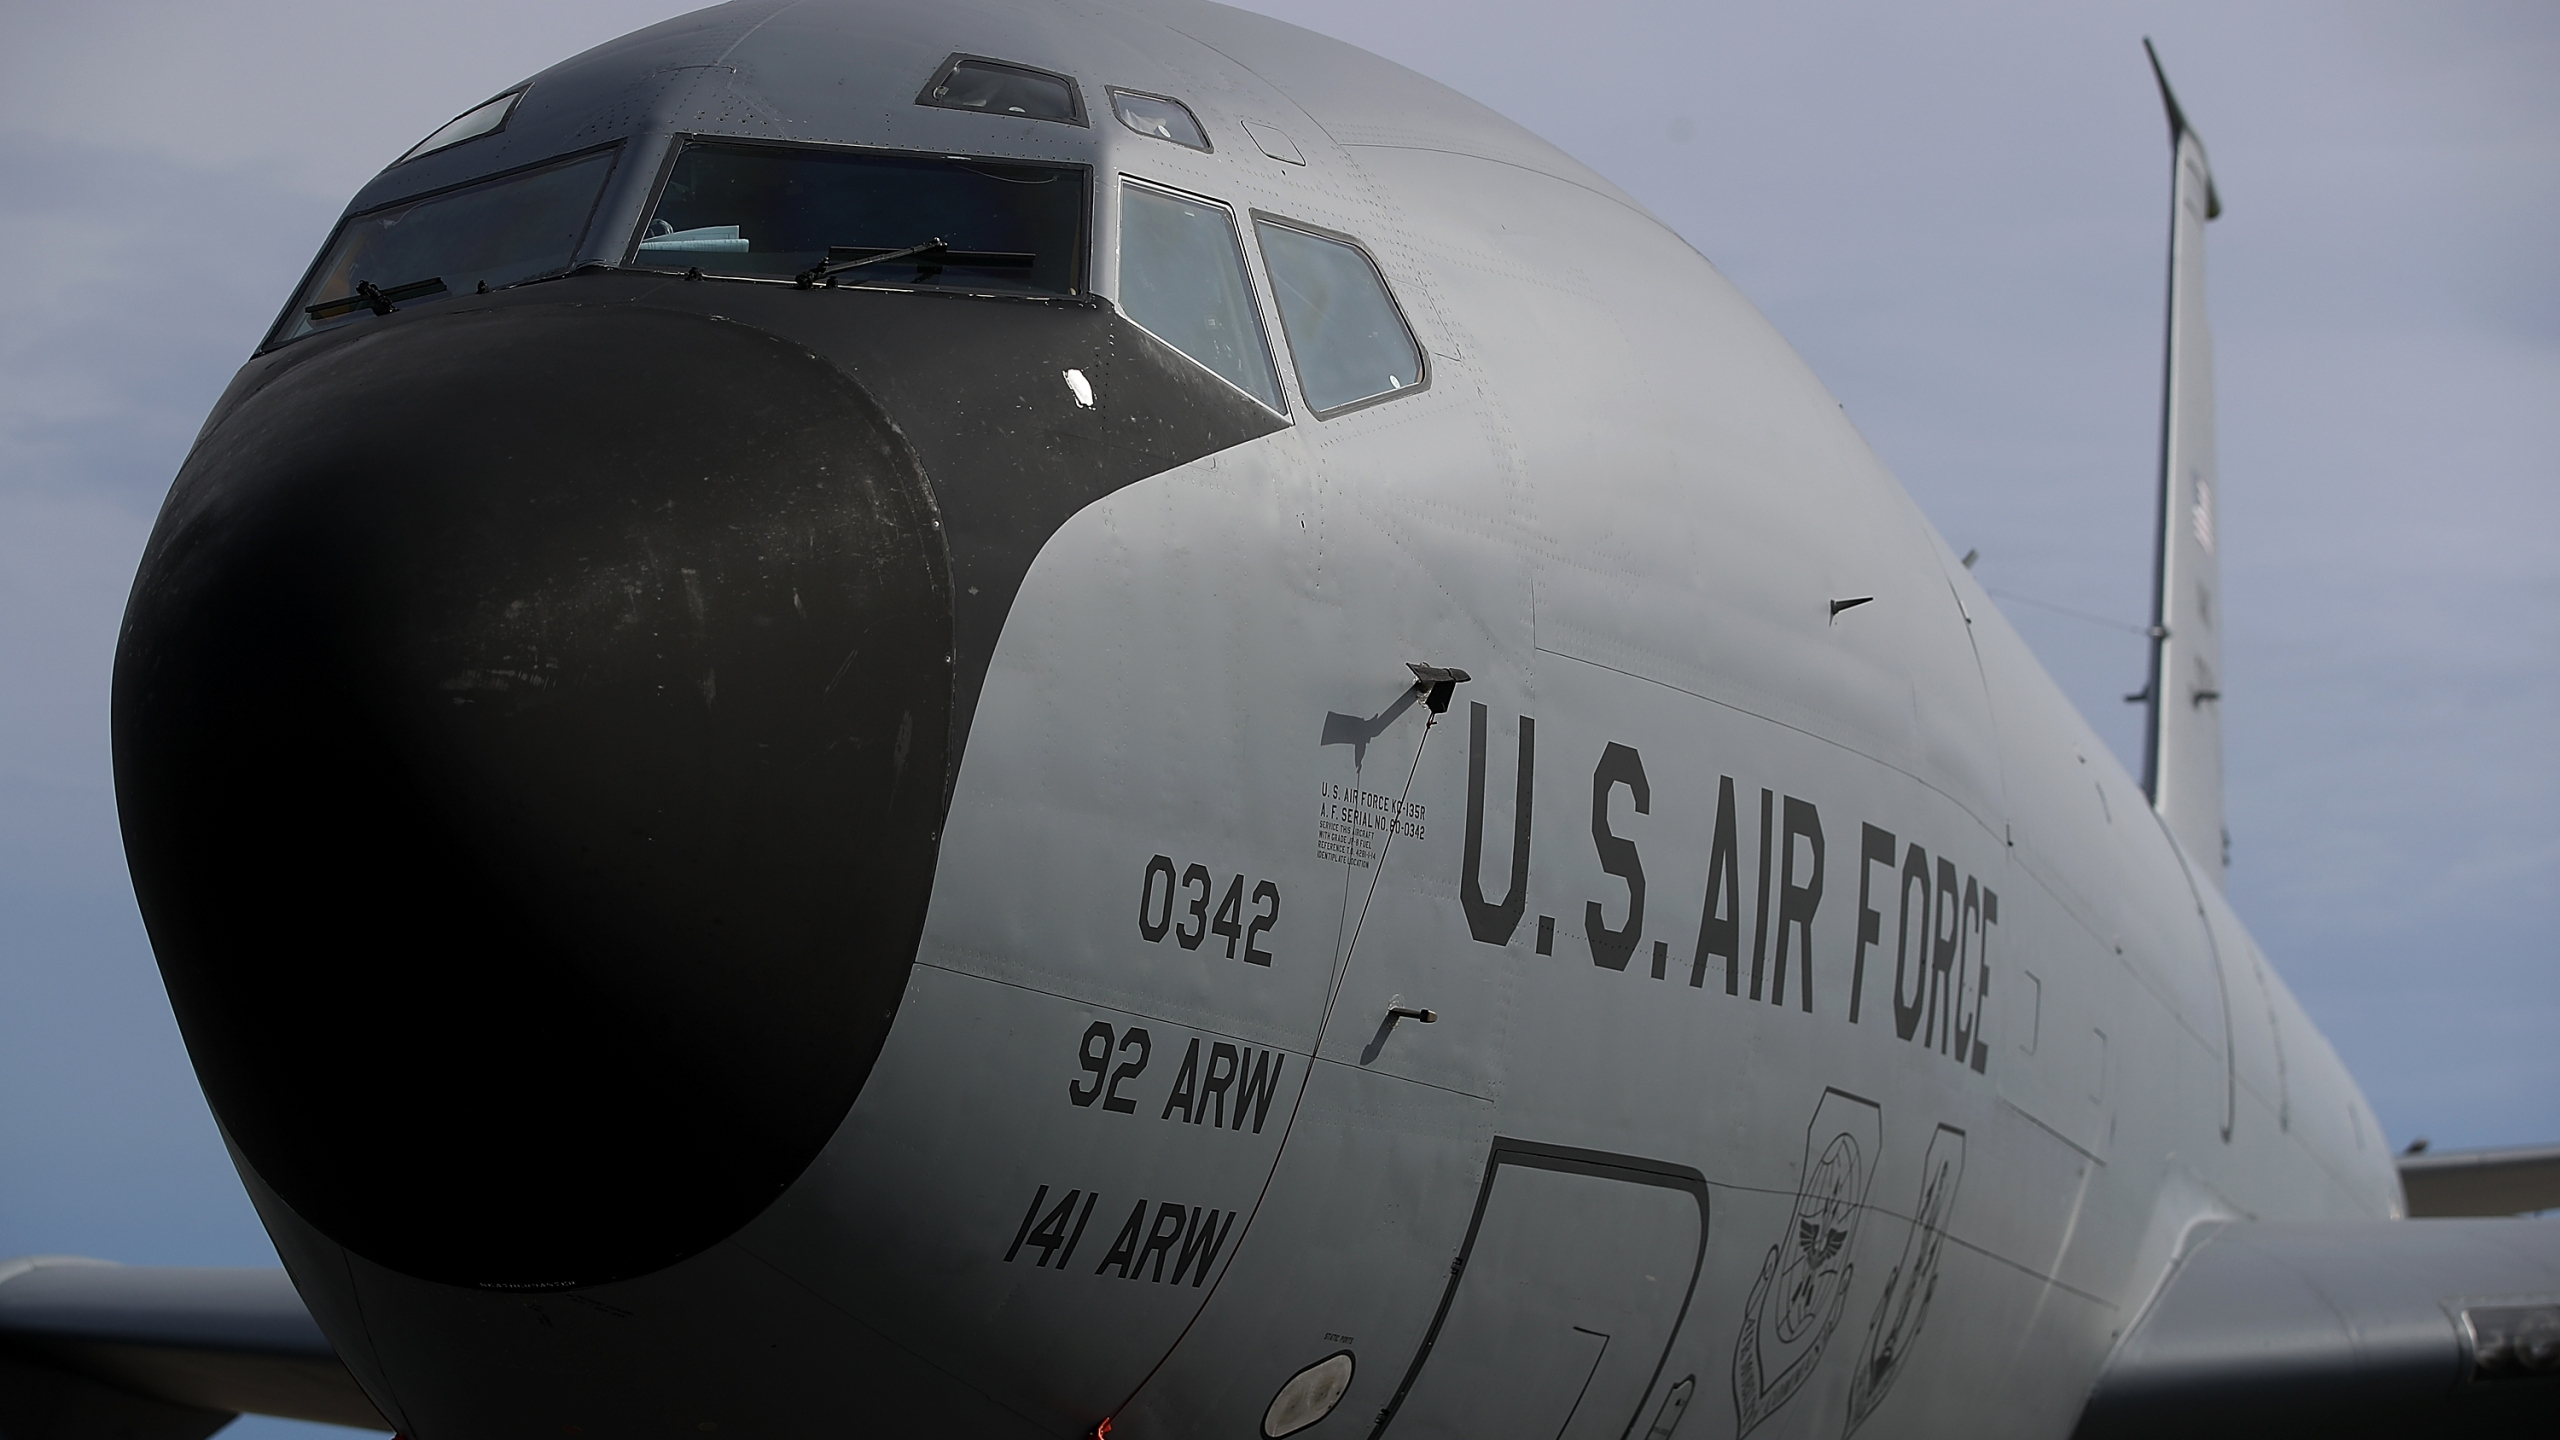 A U.S. Air Force Boeing KC-135 Stratotanker sits on the tarmac at Andersen Air Force base on August 17, 2017 in Yigo, Guam. (Justin Sullivan/Getty Images)